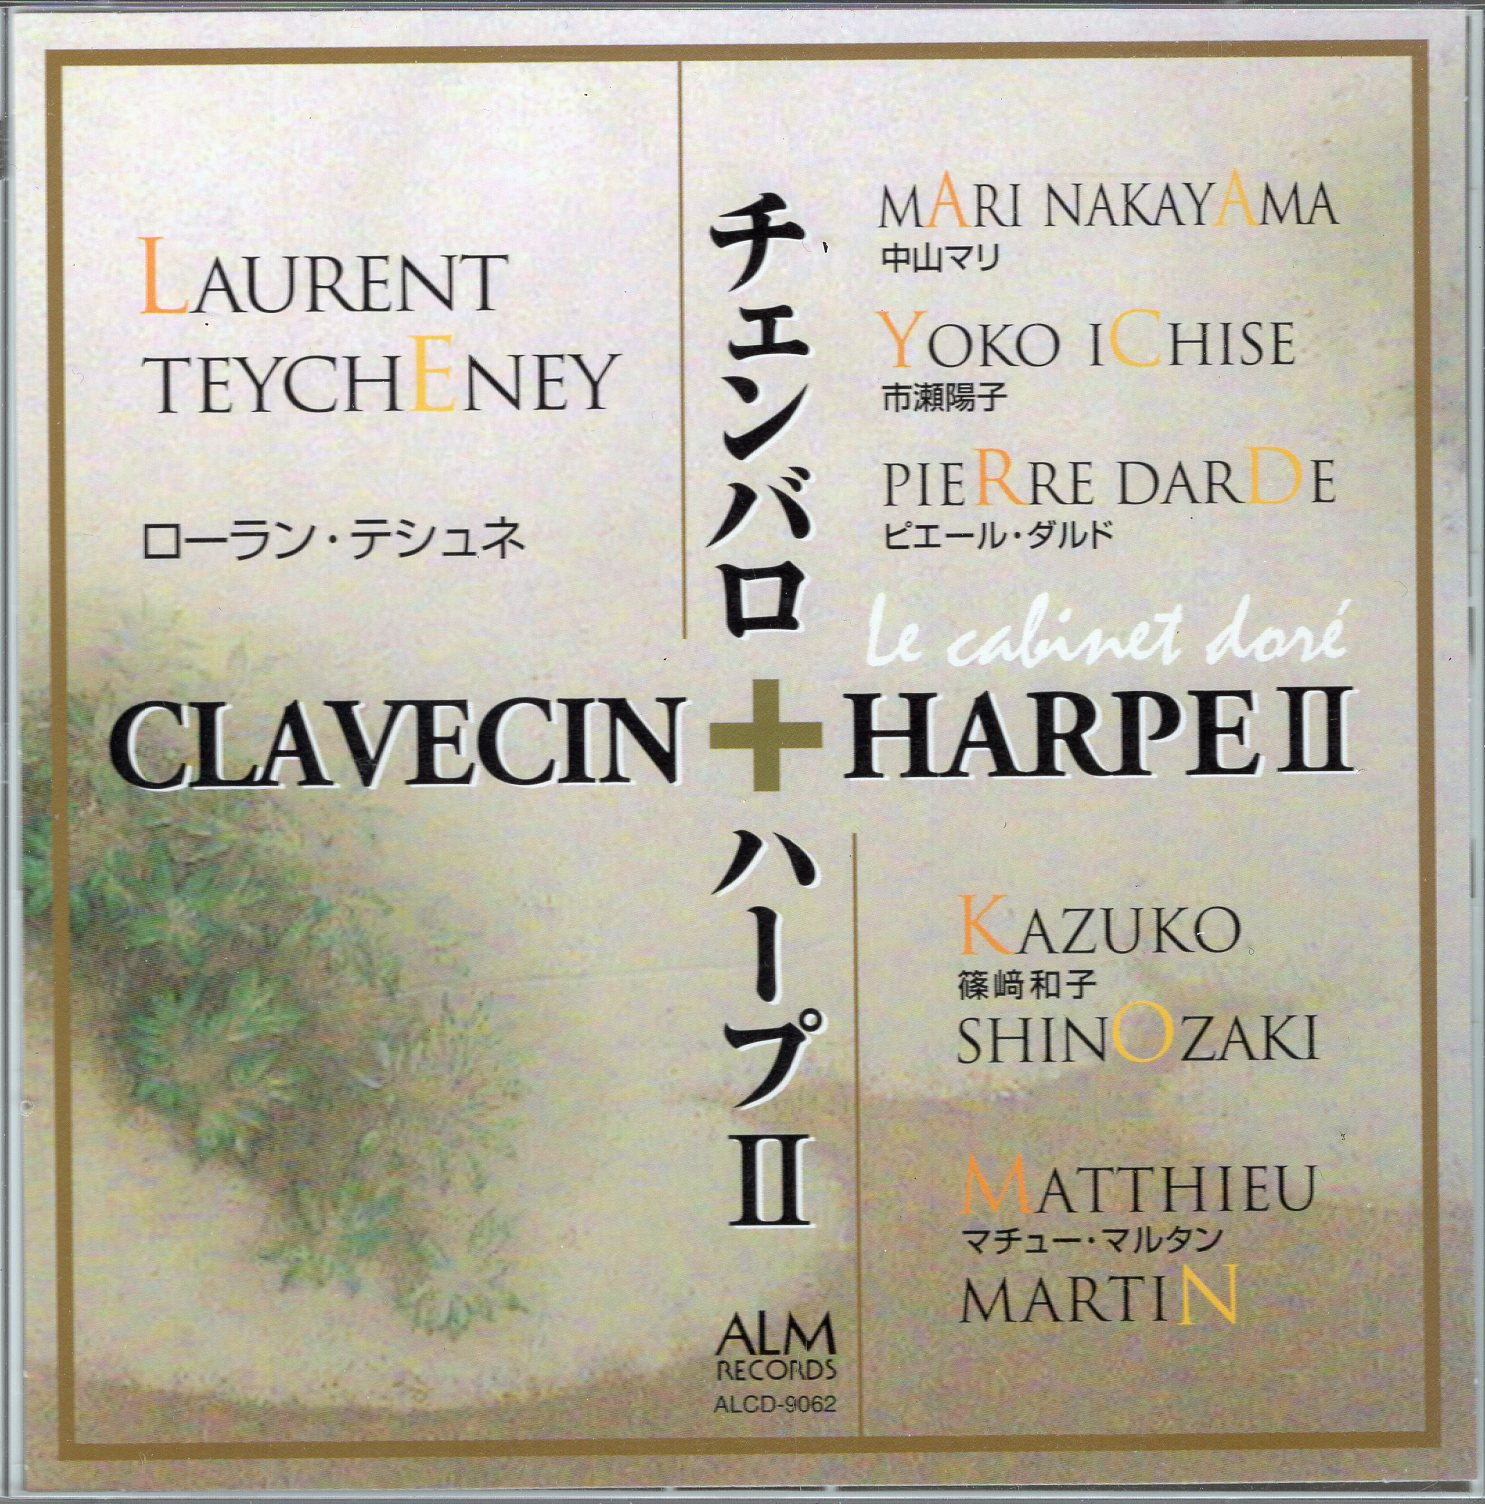 """Clavecin+Harpe II"" Laurent Teycheney"